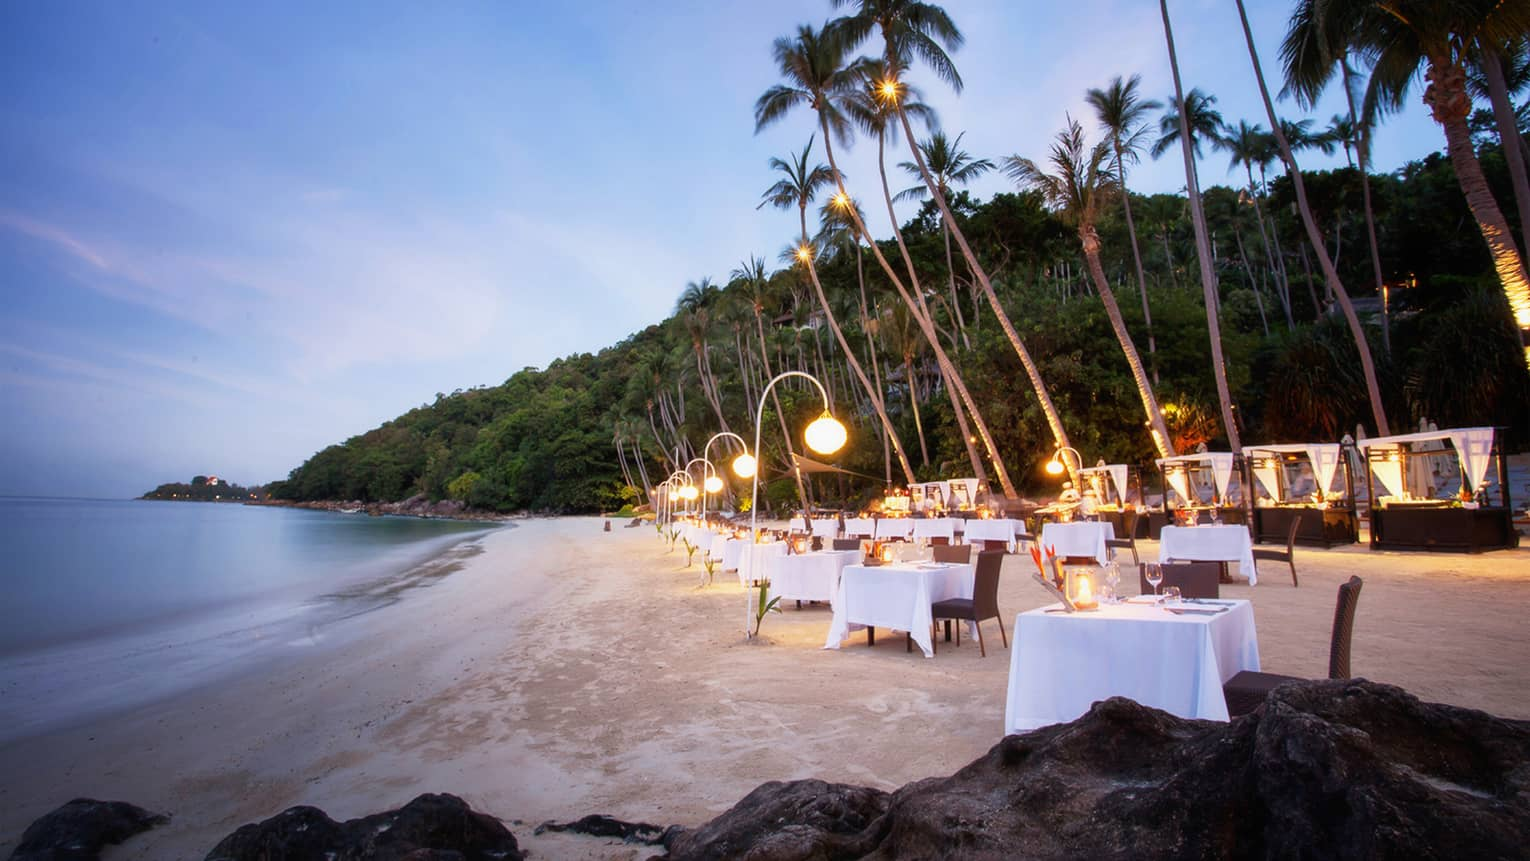 Dining tables set up along white sand beach under palm trees at dusk